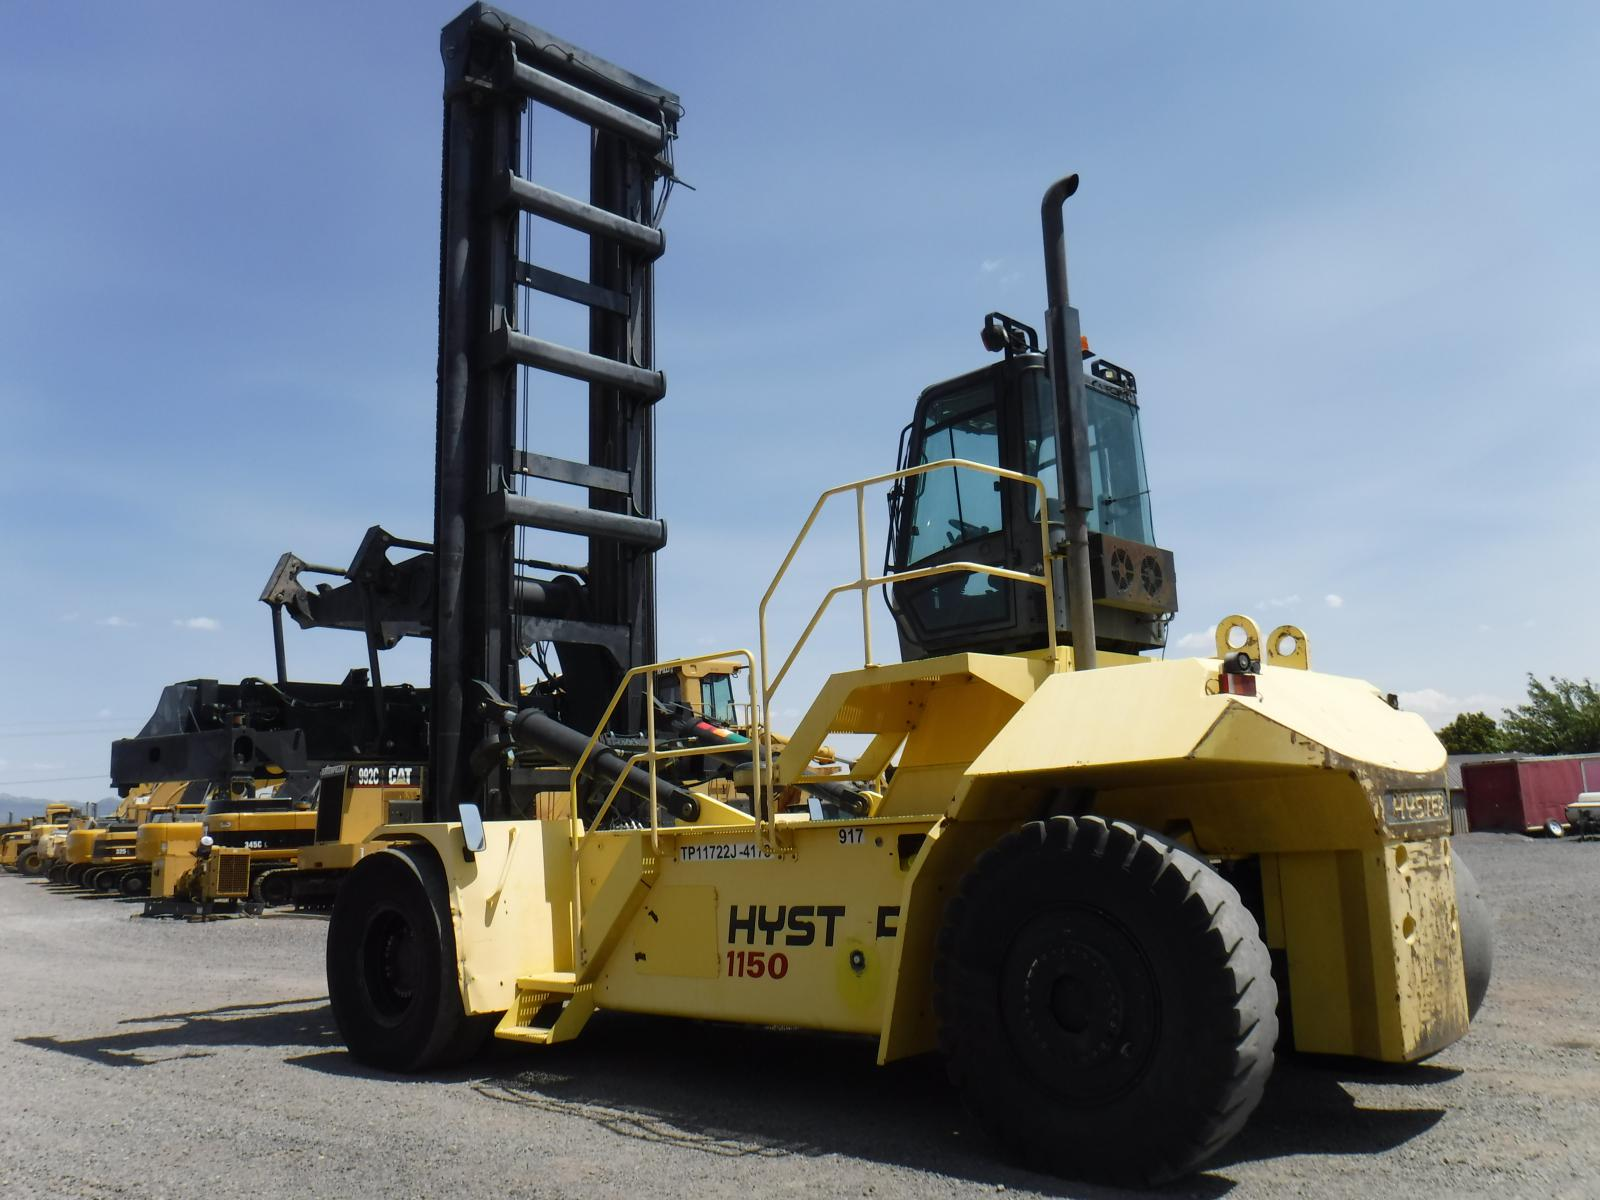 MONTACARGAS PARTA CONTENEDORES, HYSTER, 1150HD, MONTACARGAS PARA PUERTOS,  EQUIPOS PARA CONTENEDORES,